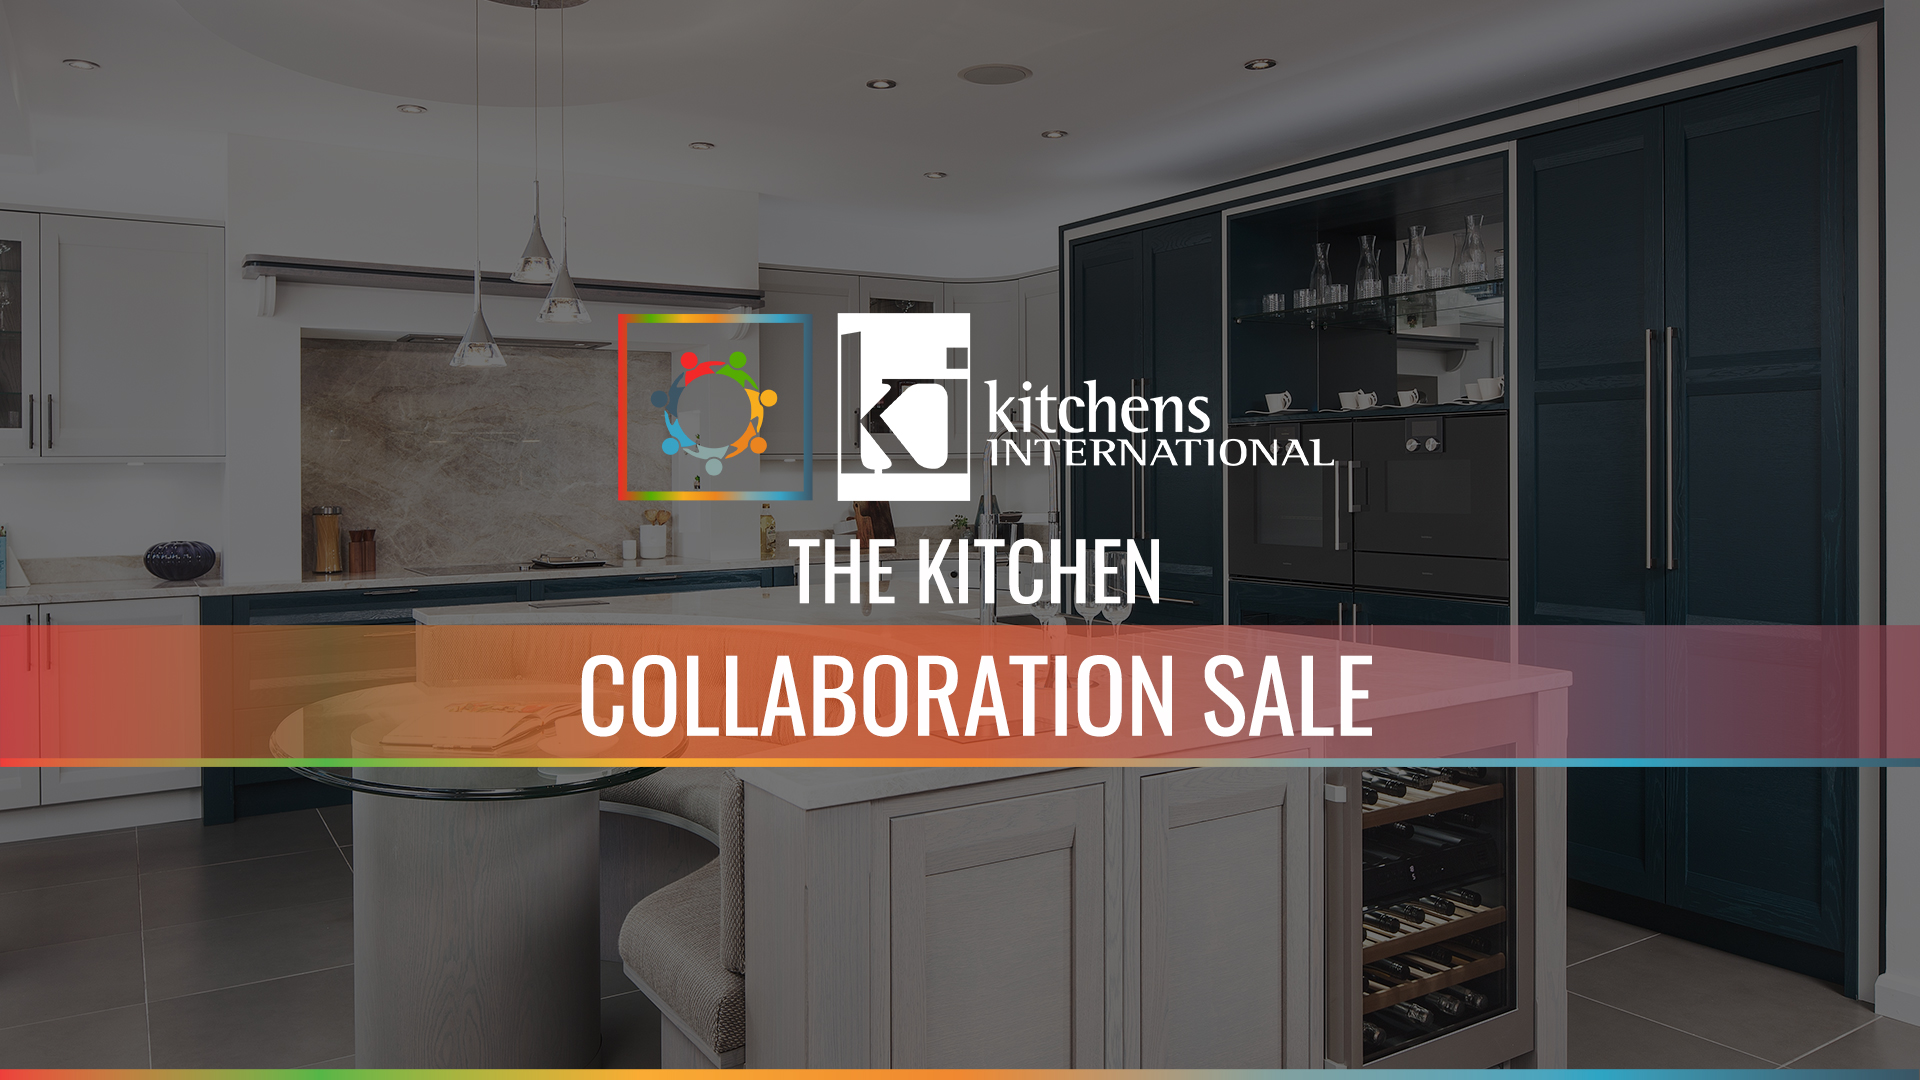 Kitchens-International-Collaboration-Sale-Aberdeen-Edinburgh-Glasgow-Tillicoultry